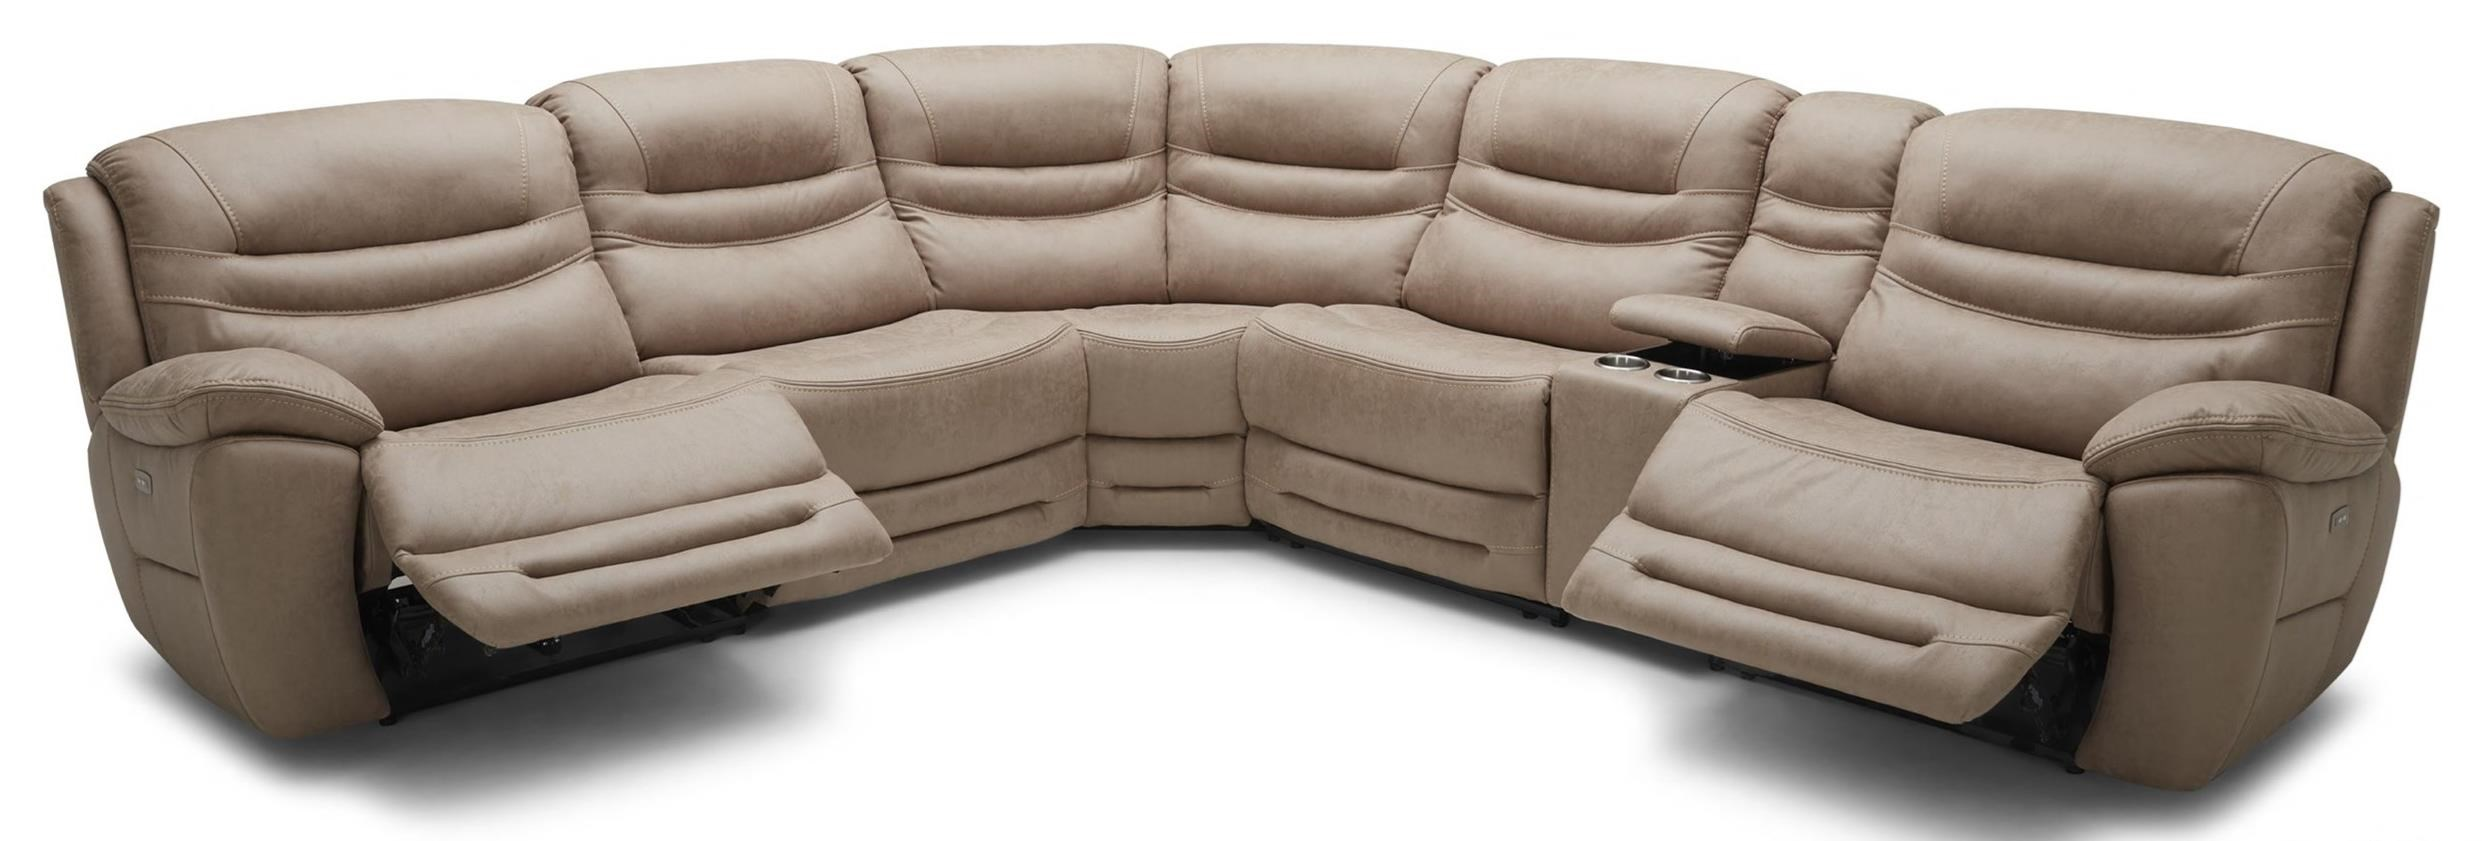 083 Motion Reclining Sectional Sofa With 4 USB, 2 Power Ports In Cupholder - Splash Tan  $2195